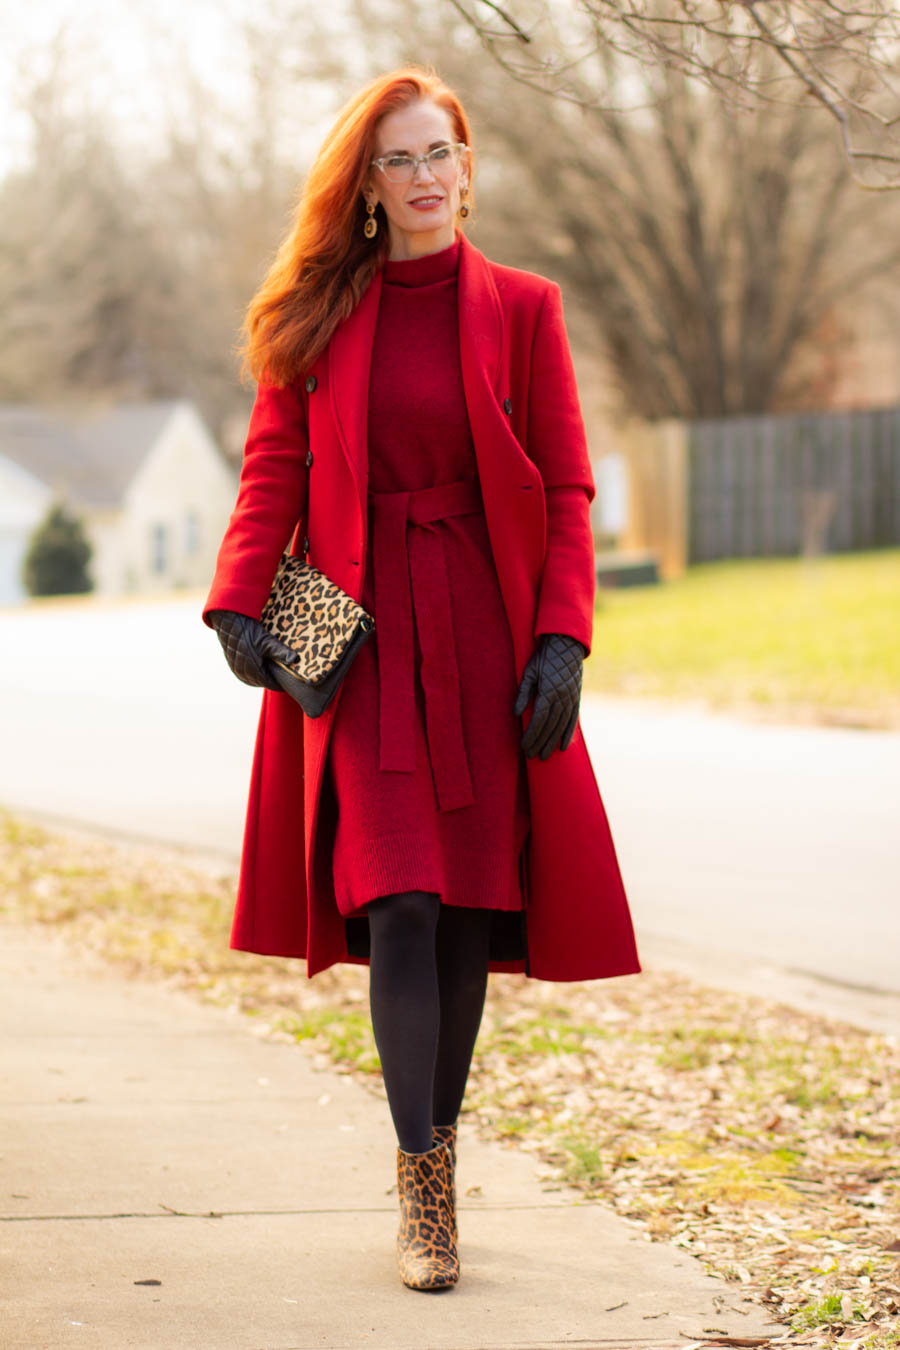 Monochromatic red look with red wool coat